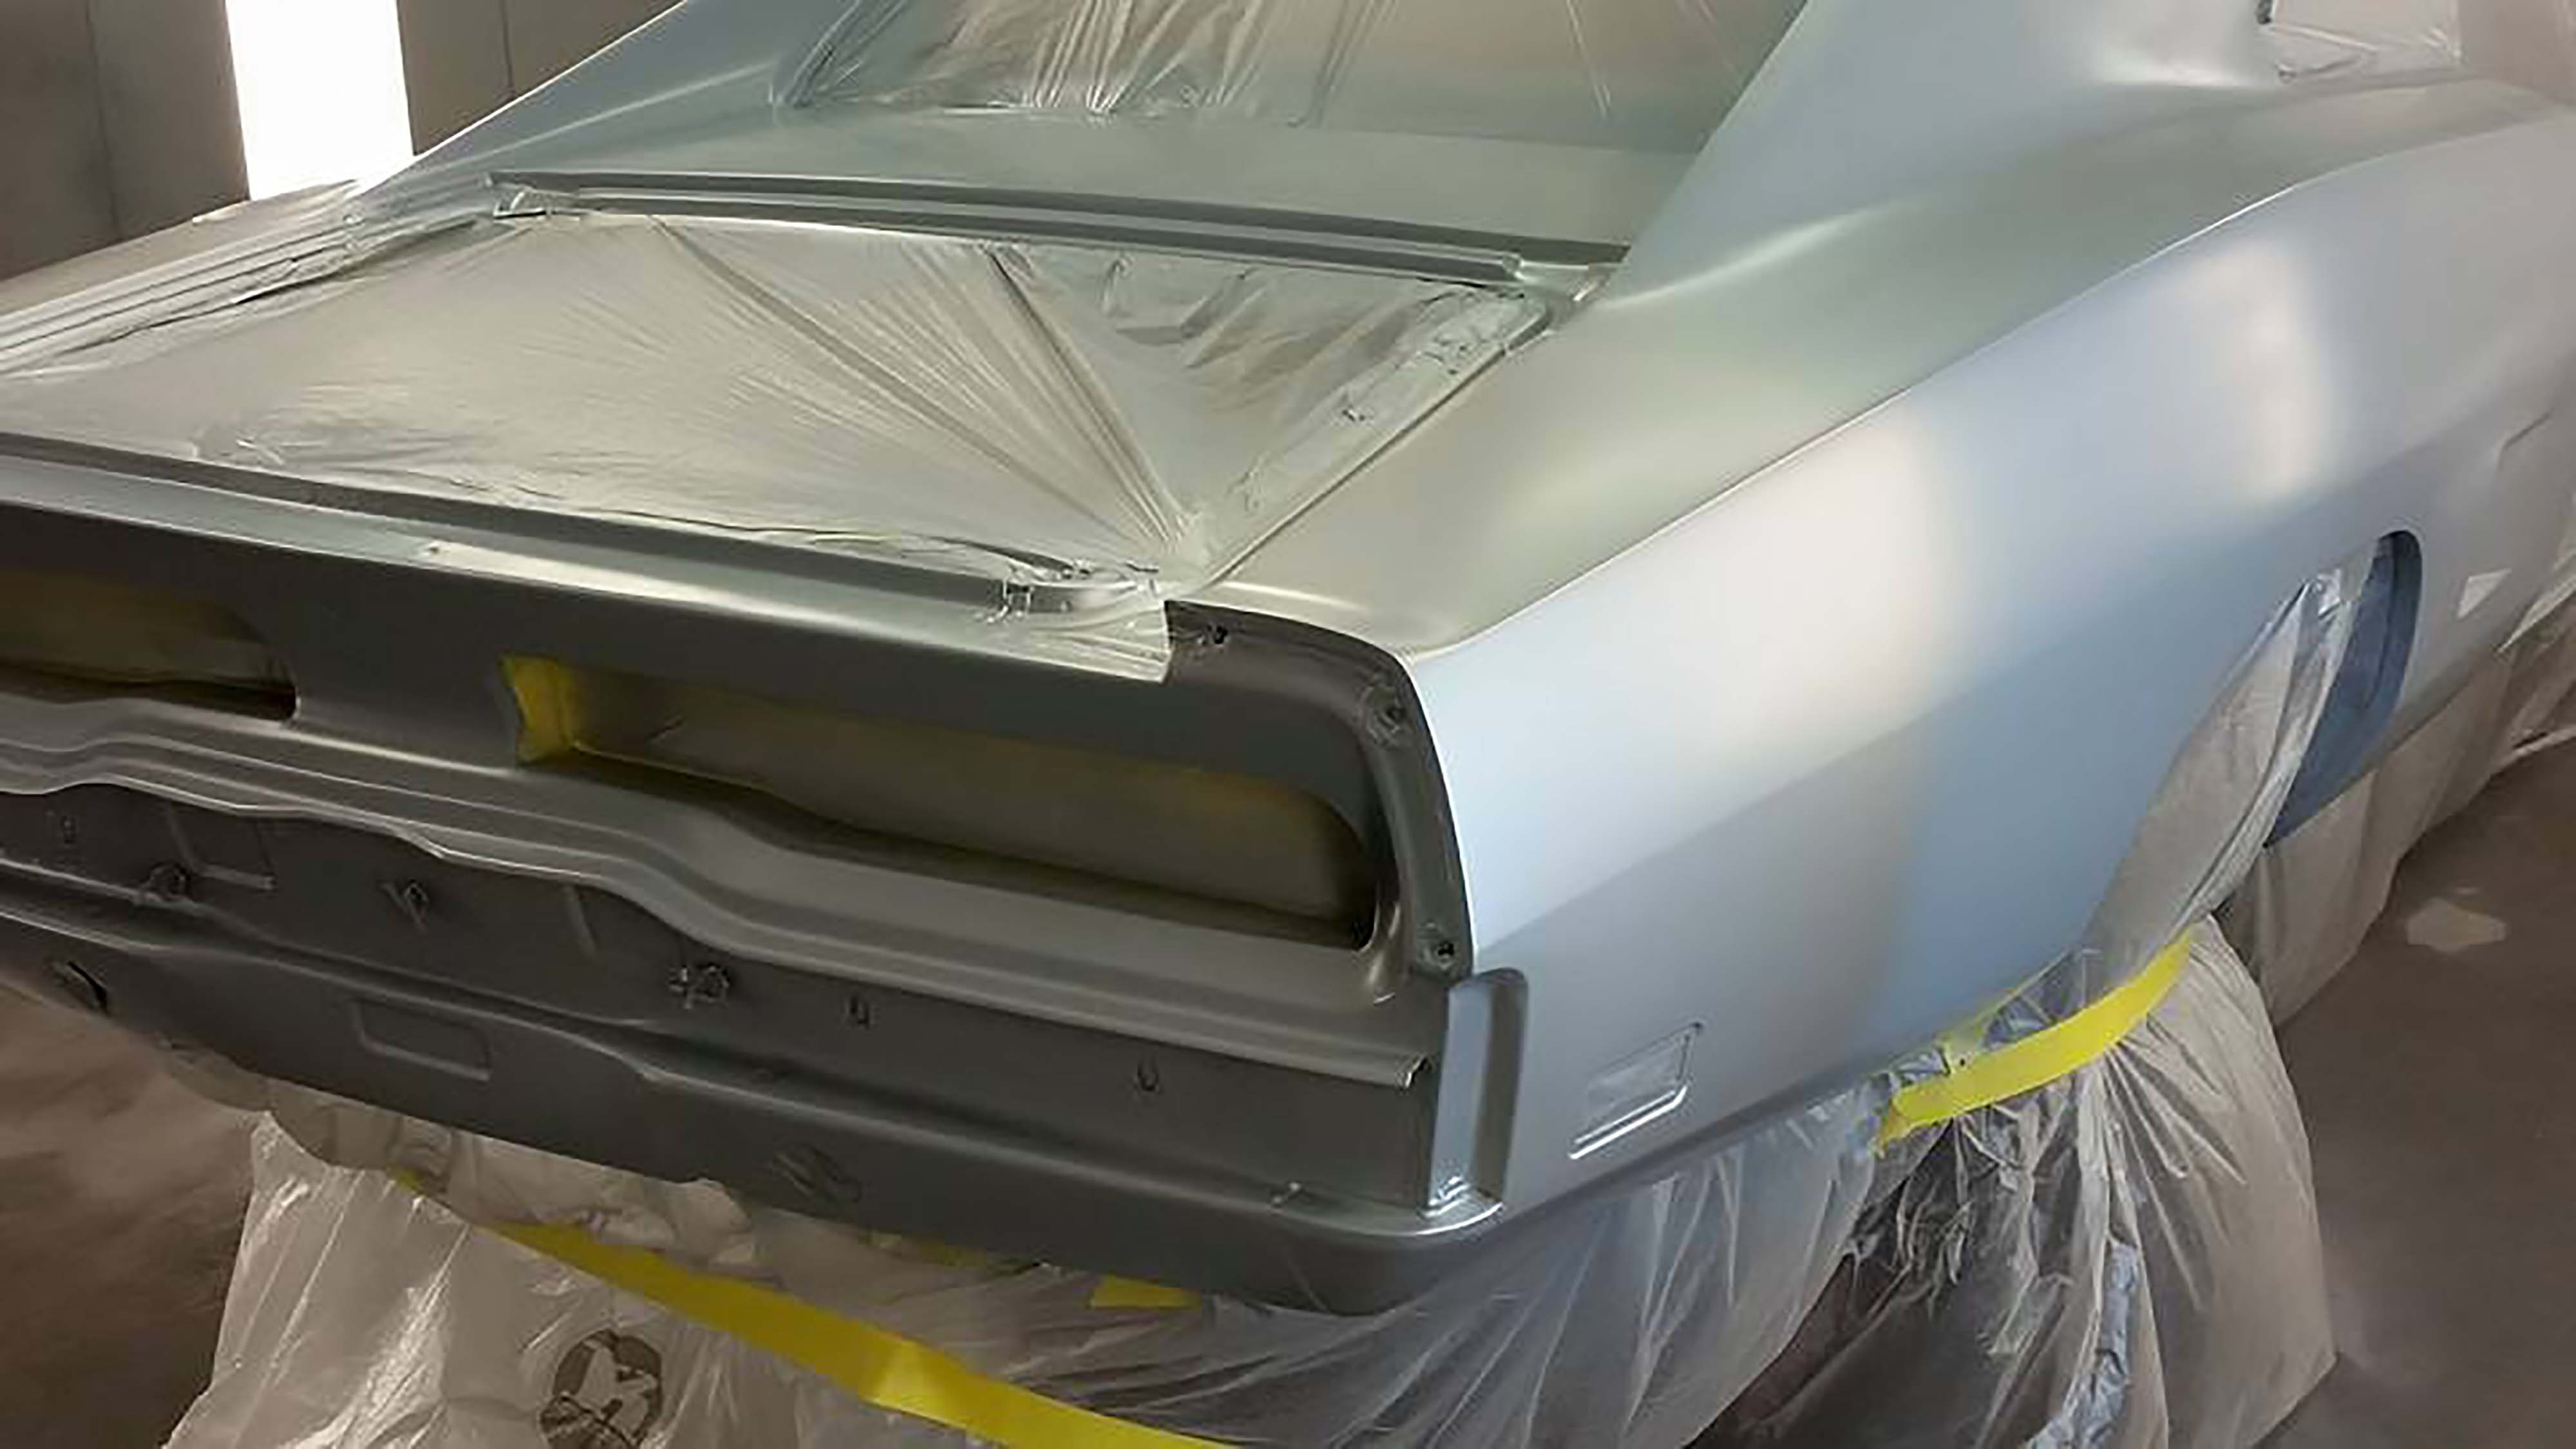 Instead of going the traditional decal route for the butt stripe, we opted to paint one on the car. That meant more work but it would also give a seamless finish to the back of the car. The very first step in the whole painting process (once the car was masked properly) was to lay down several coats of our butt stripe color, a not-too-blingy silver pearl.